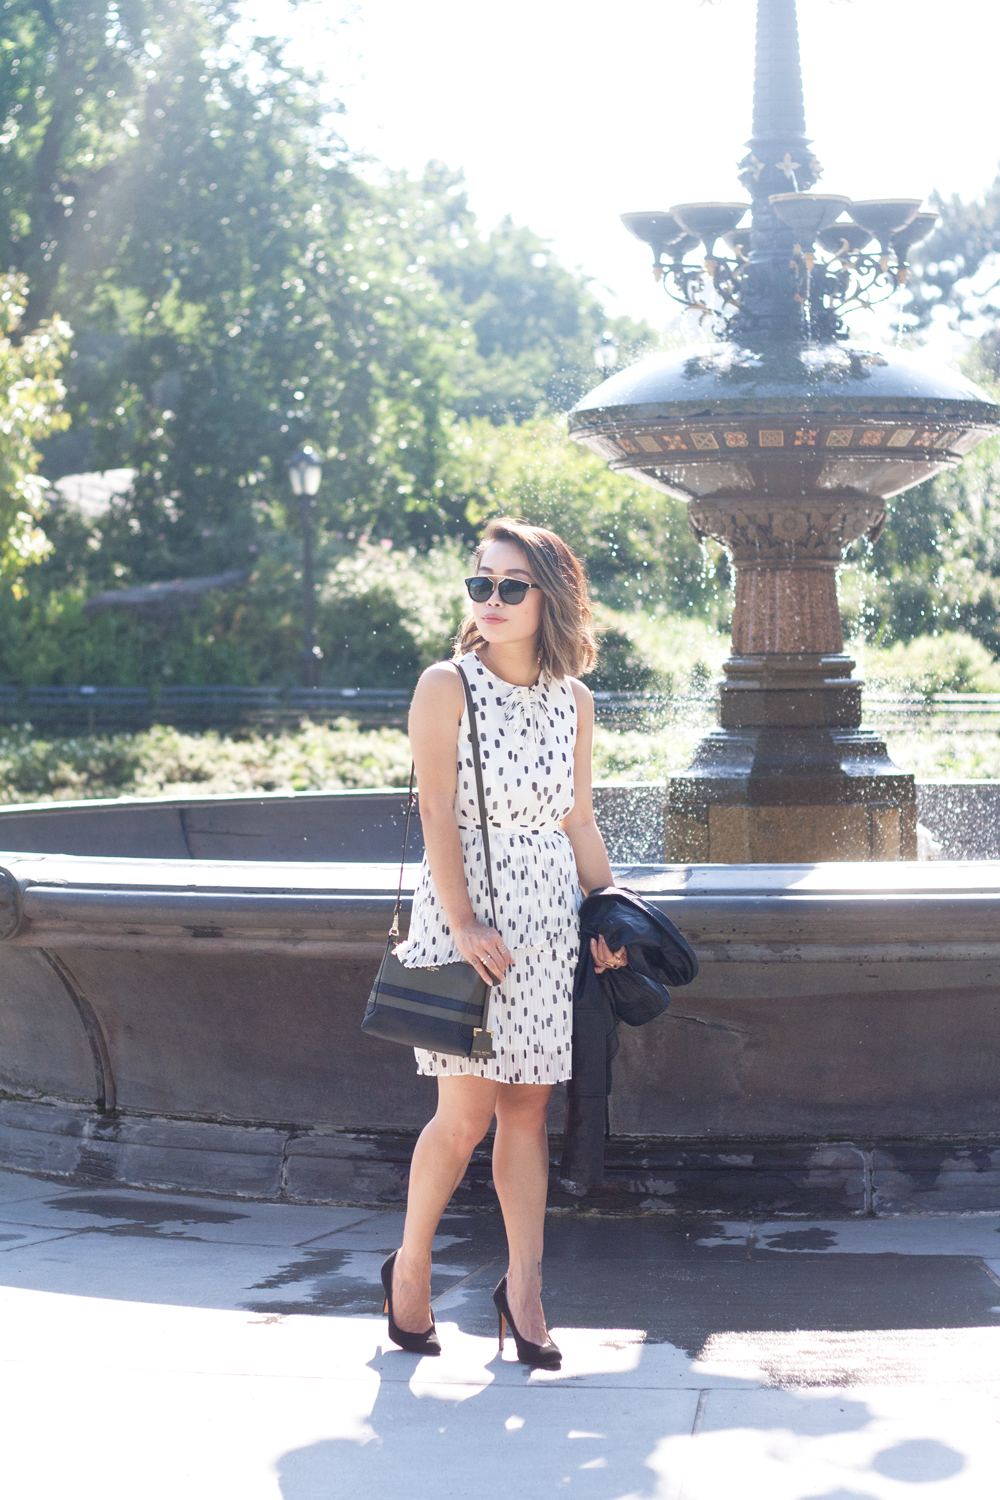 08nyc-centralpark-fountain-dots-dress-travel-fashion-style